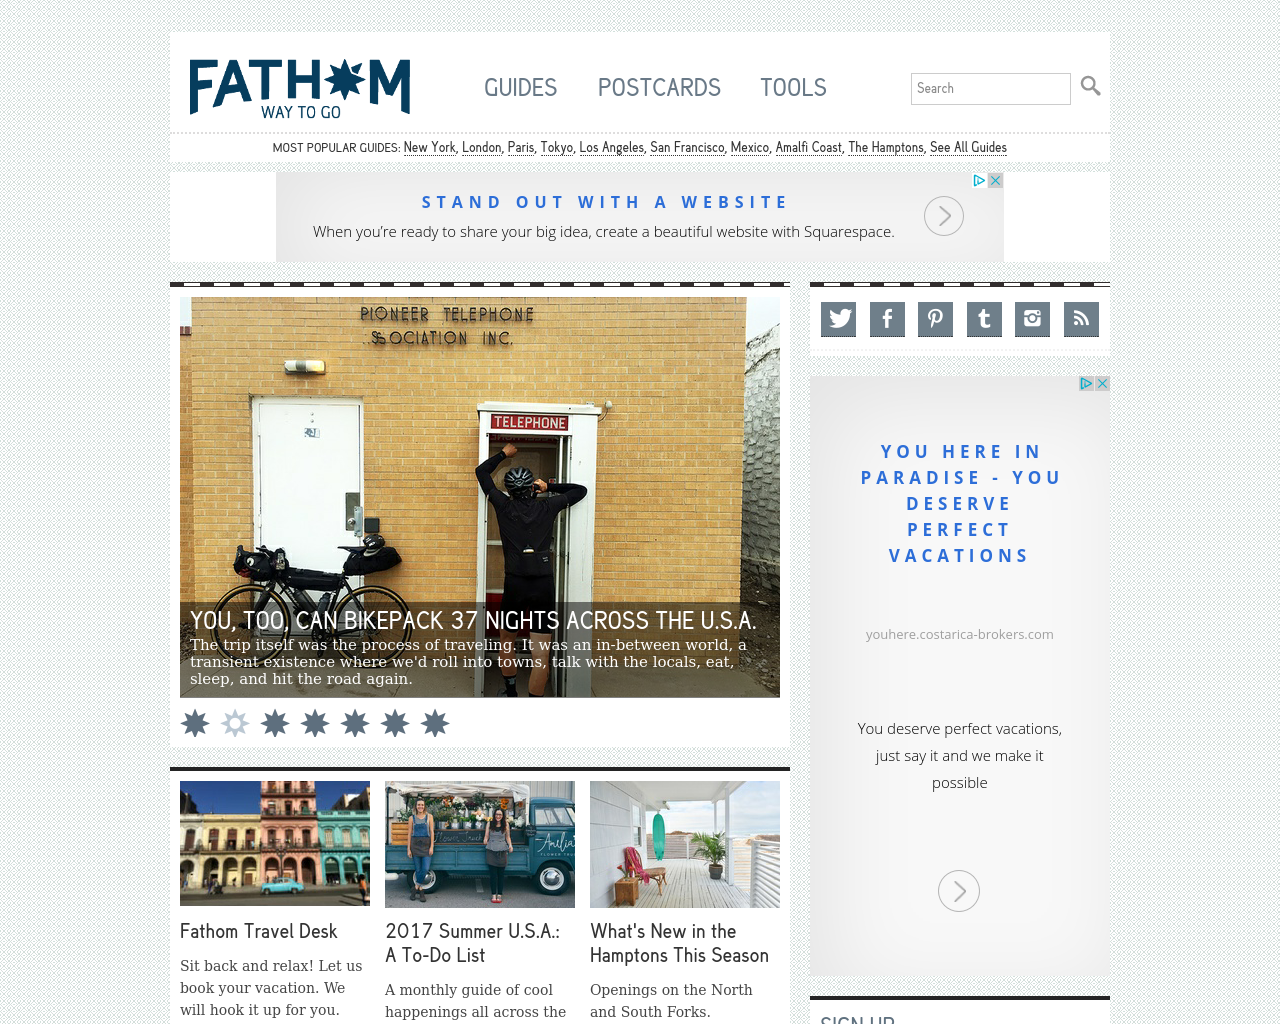 Fathom-Way-To-Go-Advertising-Reviews-Pricing